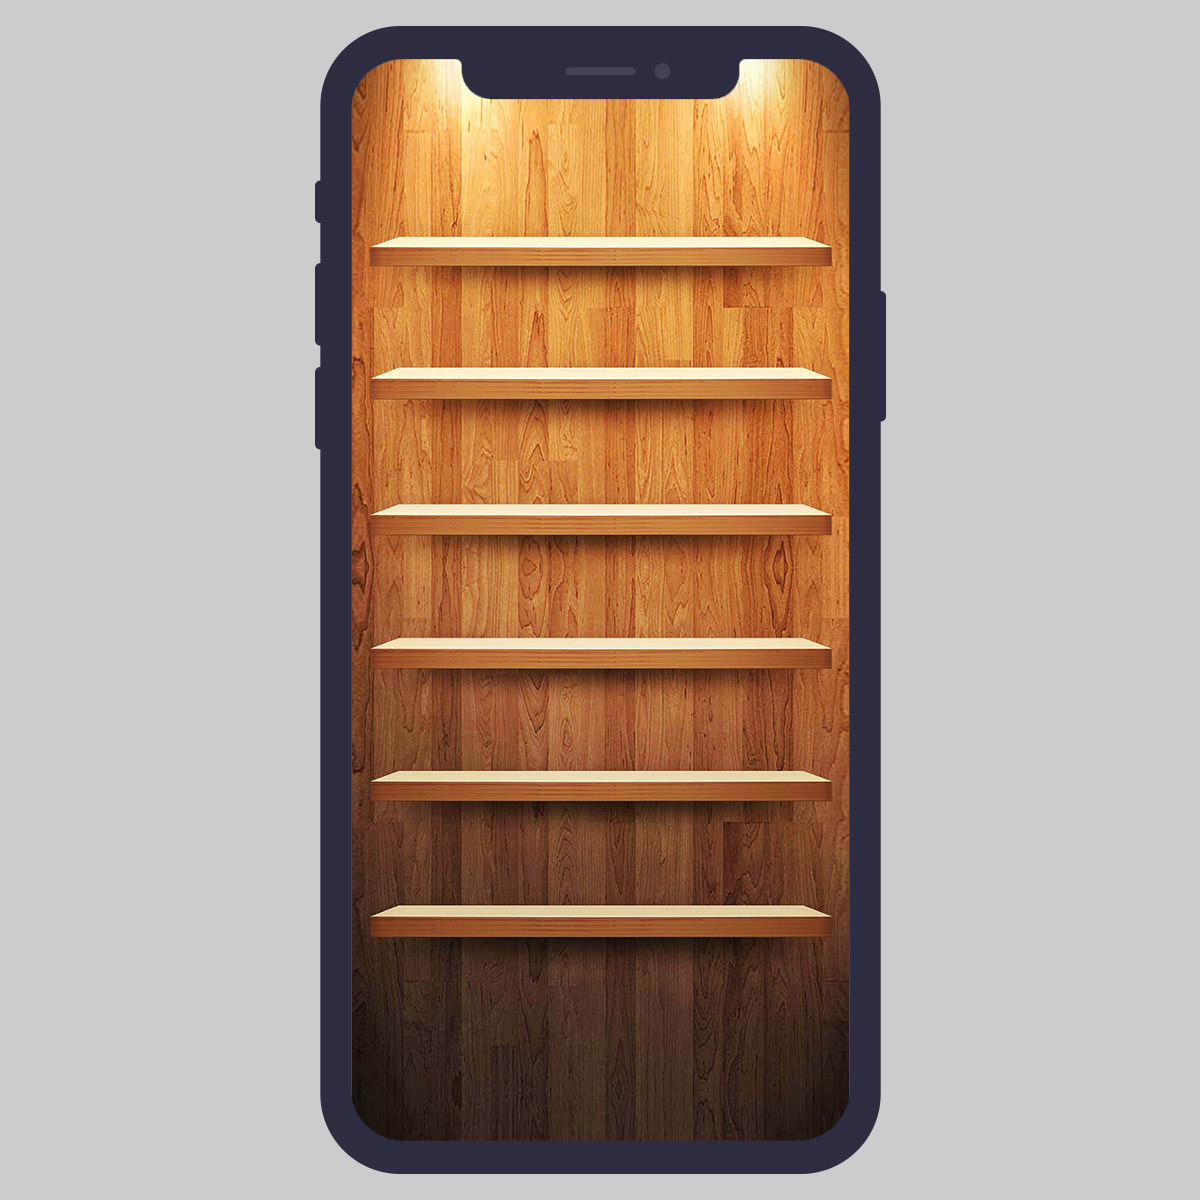 iphone shelves wallpaper